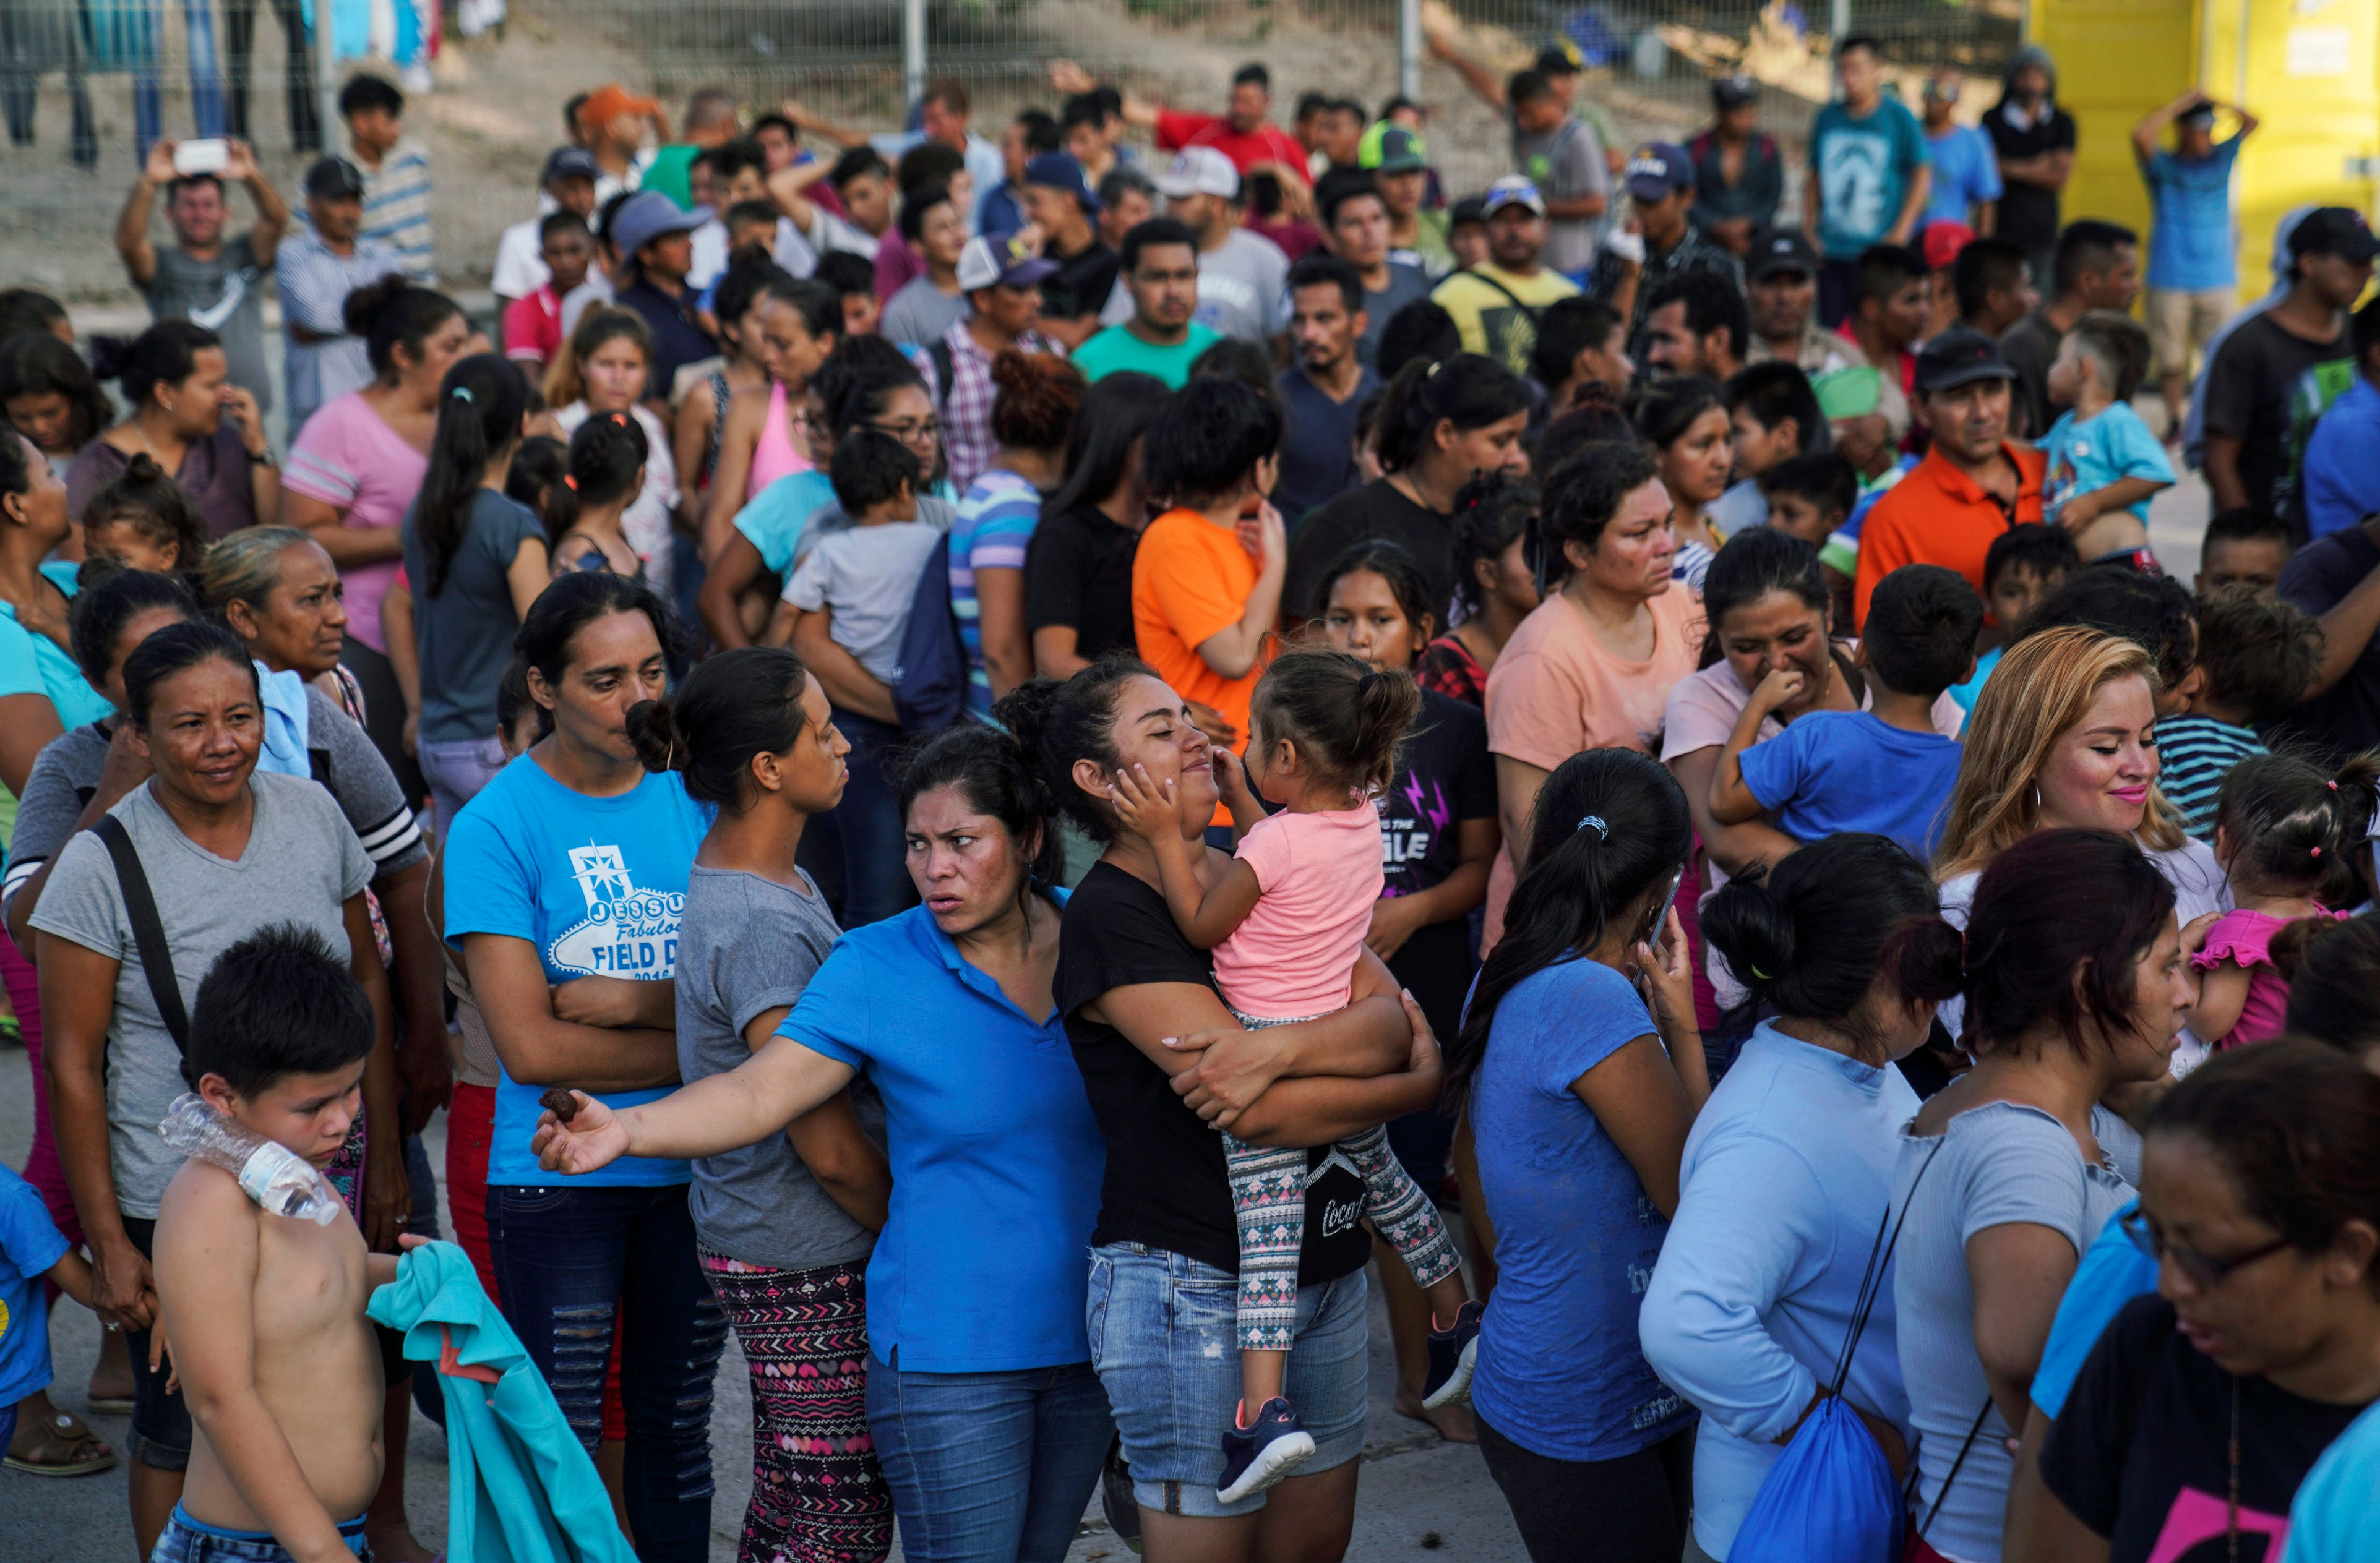 Expectations were created that with the government of President Biden there would be a better treatment of migrants.